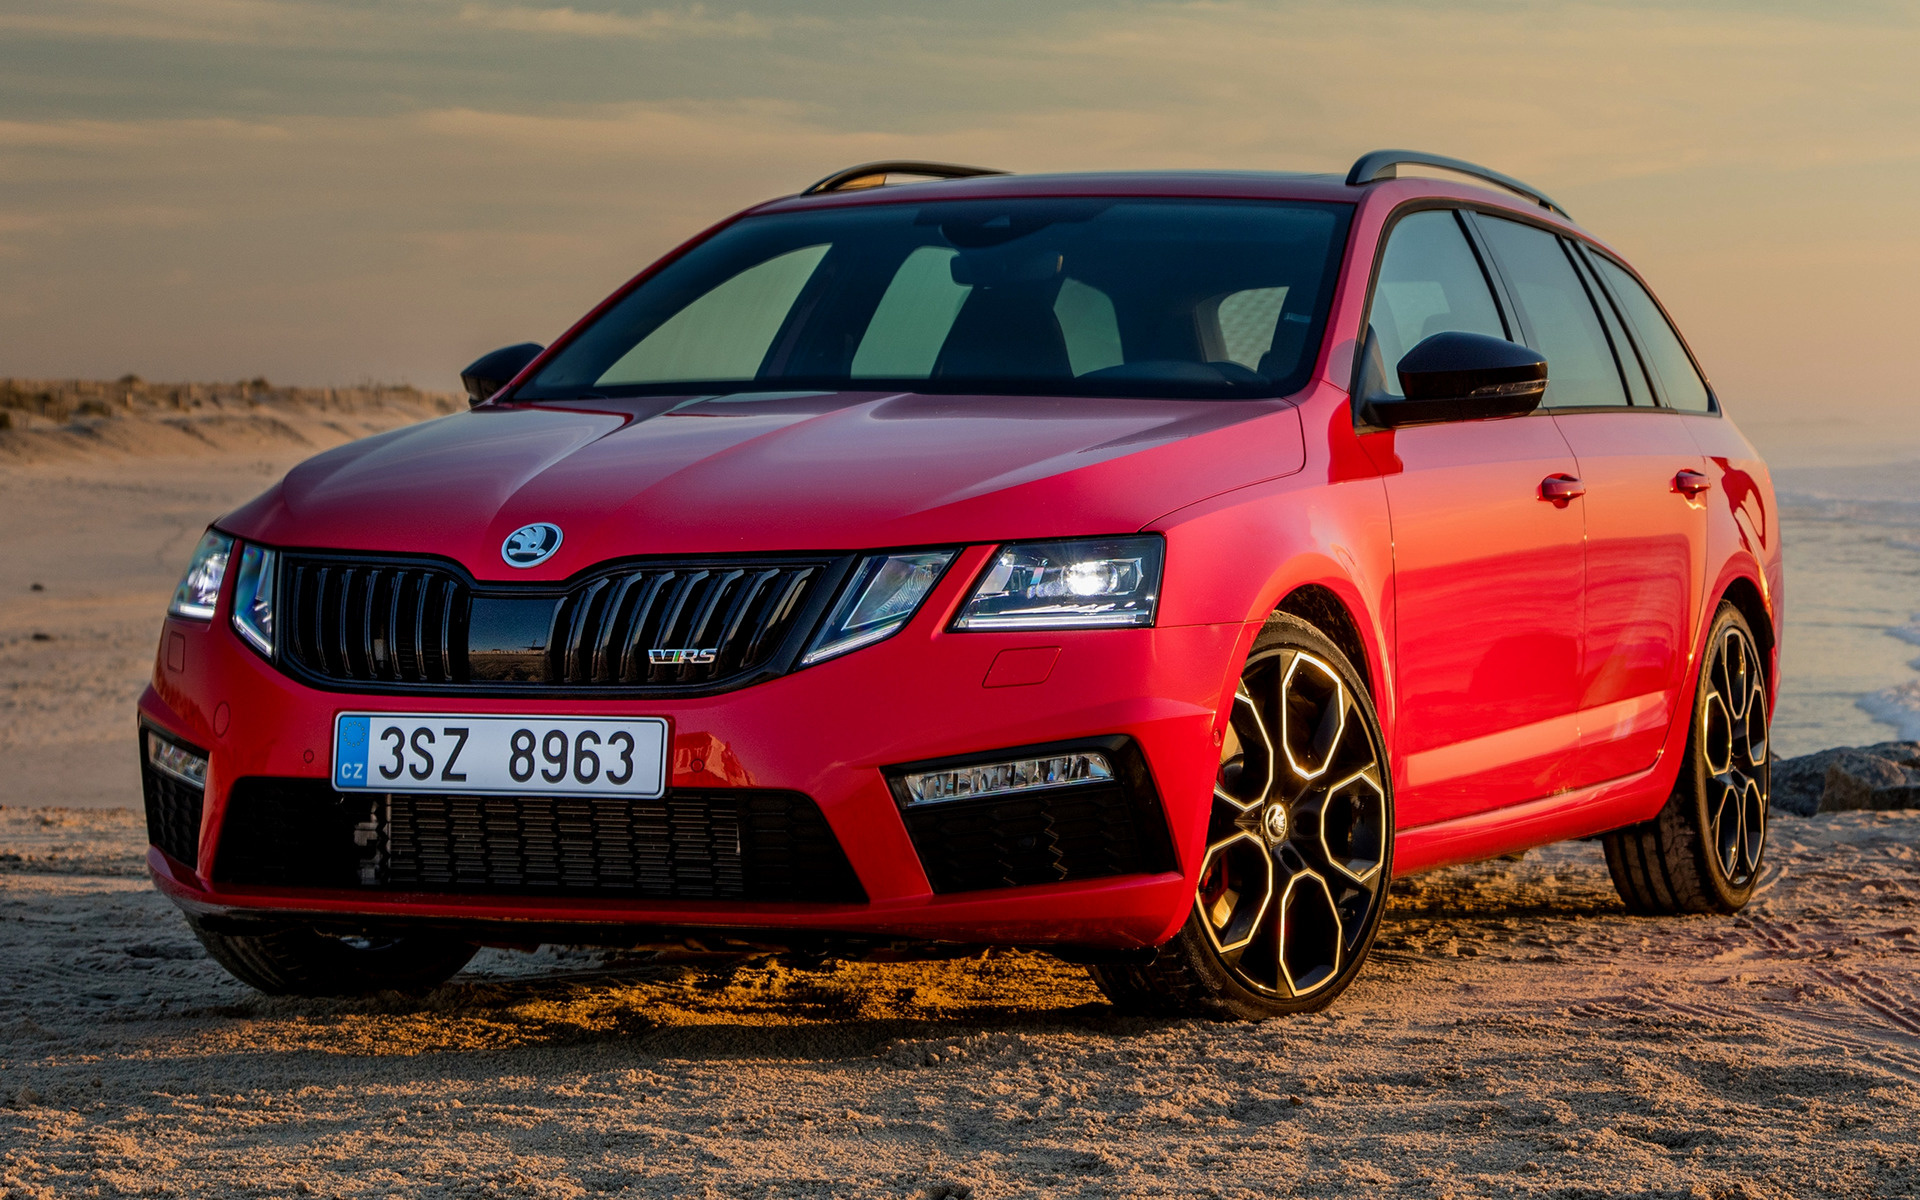 2017 skoda octavia rs 245 combi wallpapers and hd images car pixel. Black Bedroom Furniture Sets. Home Design Ideas